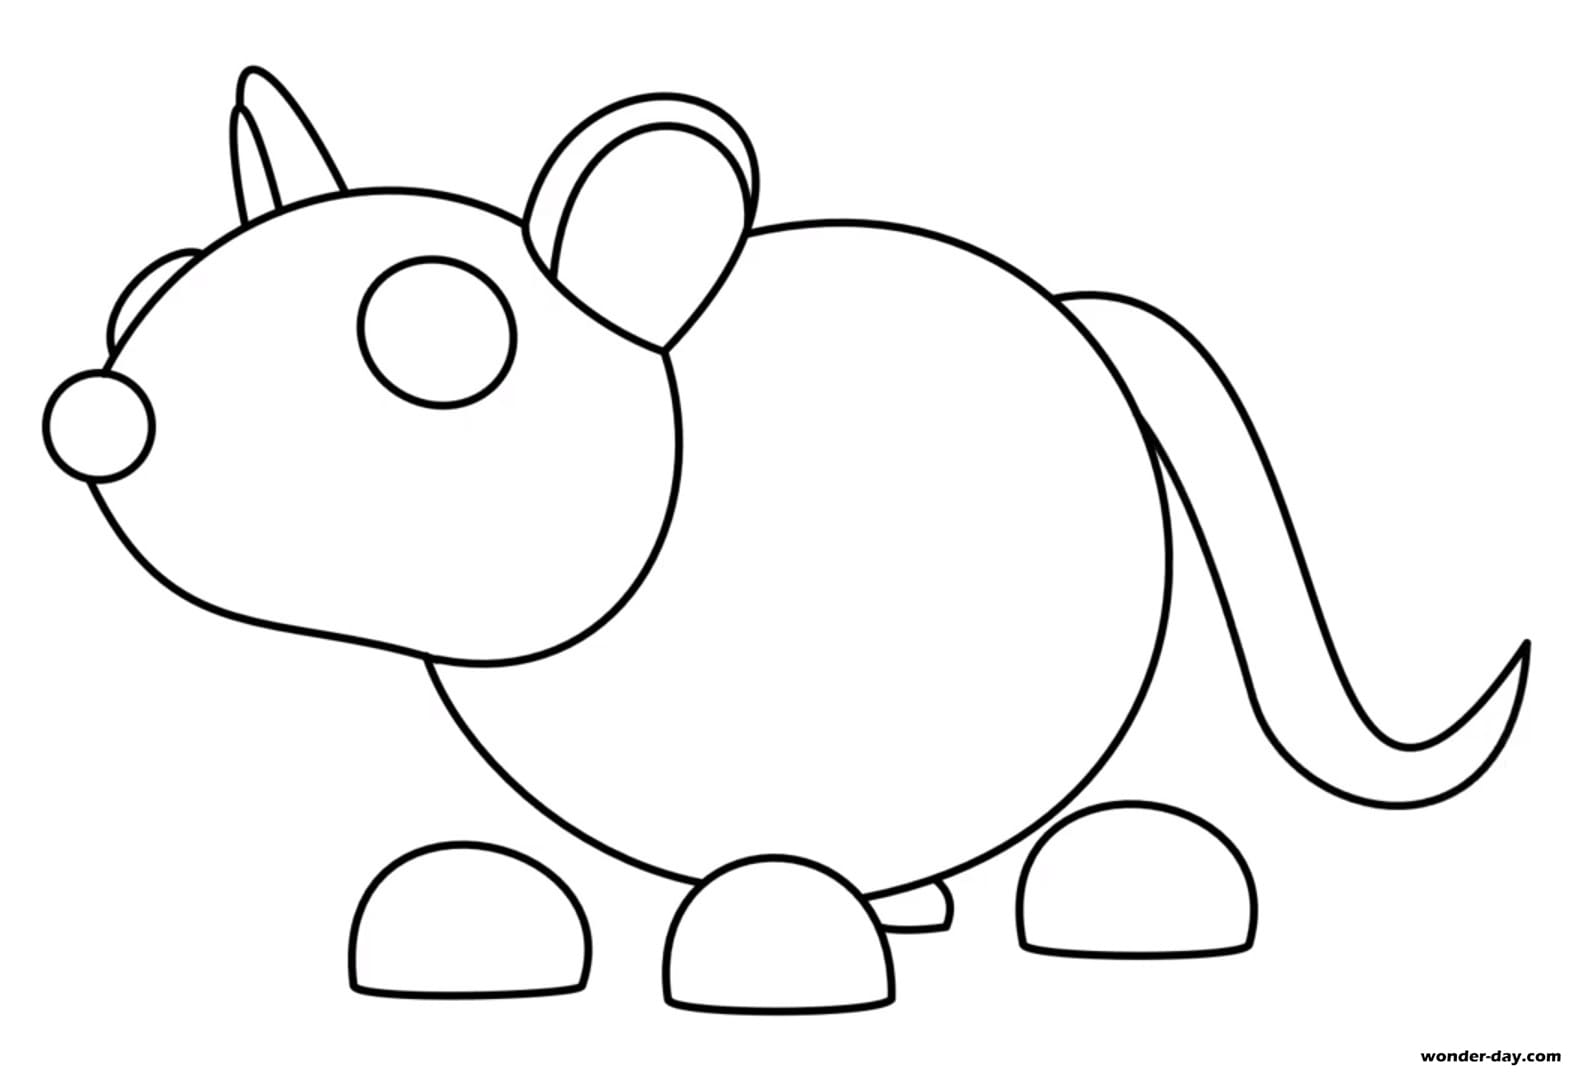 Coloring Pages Adopt Me Print For Free Wonder Day Com ...